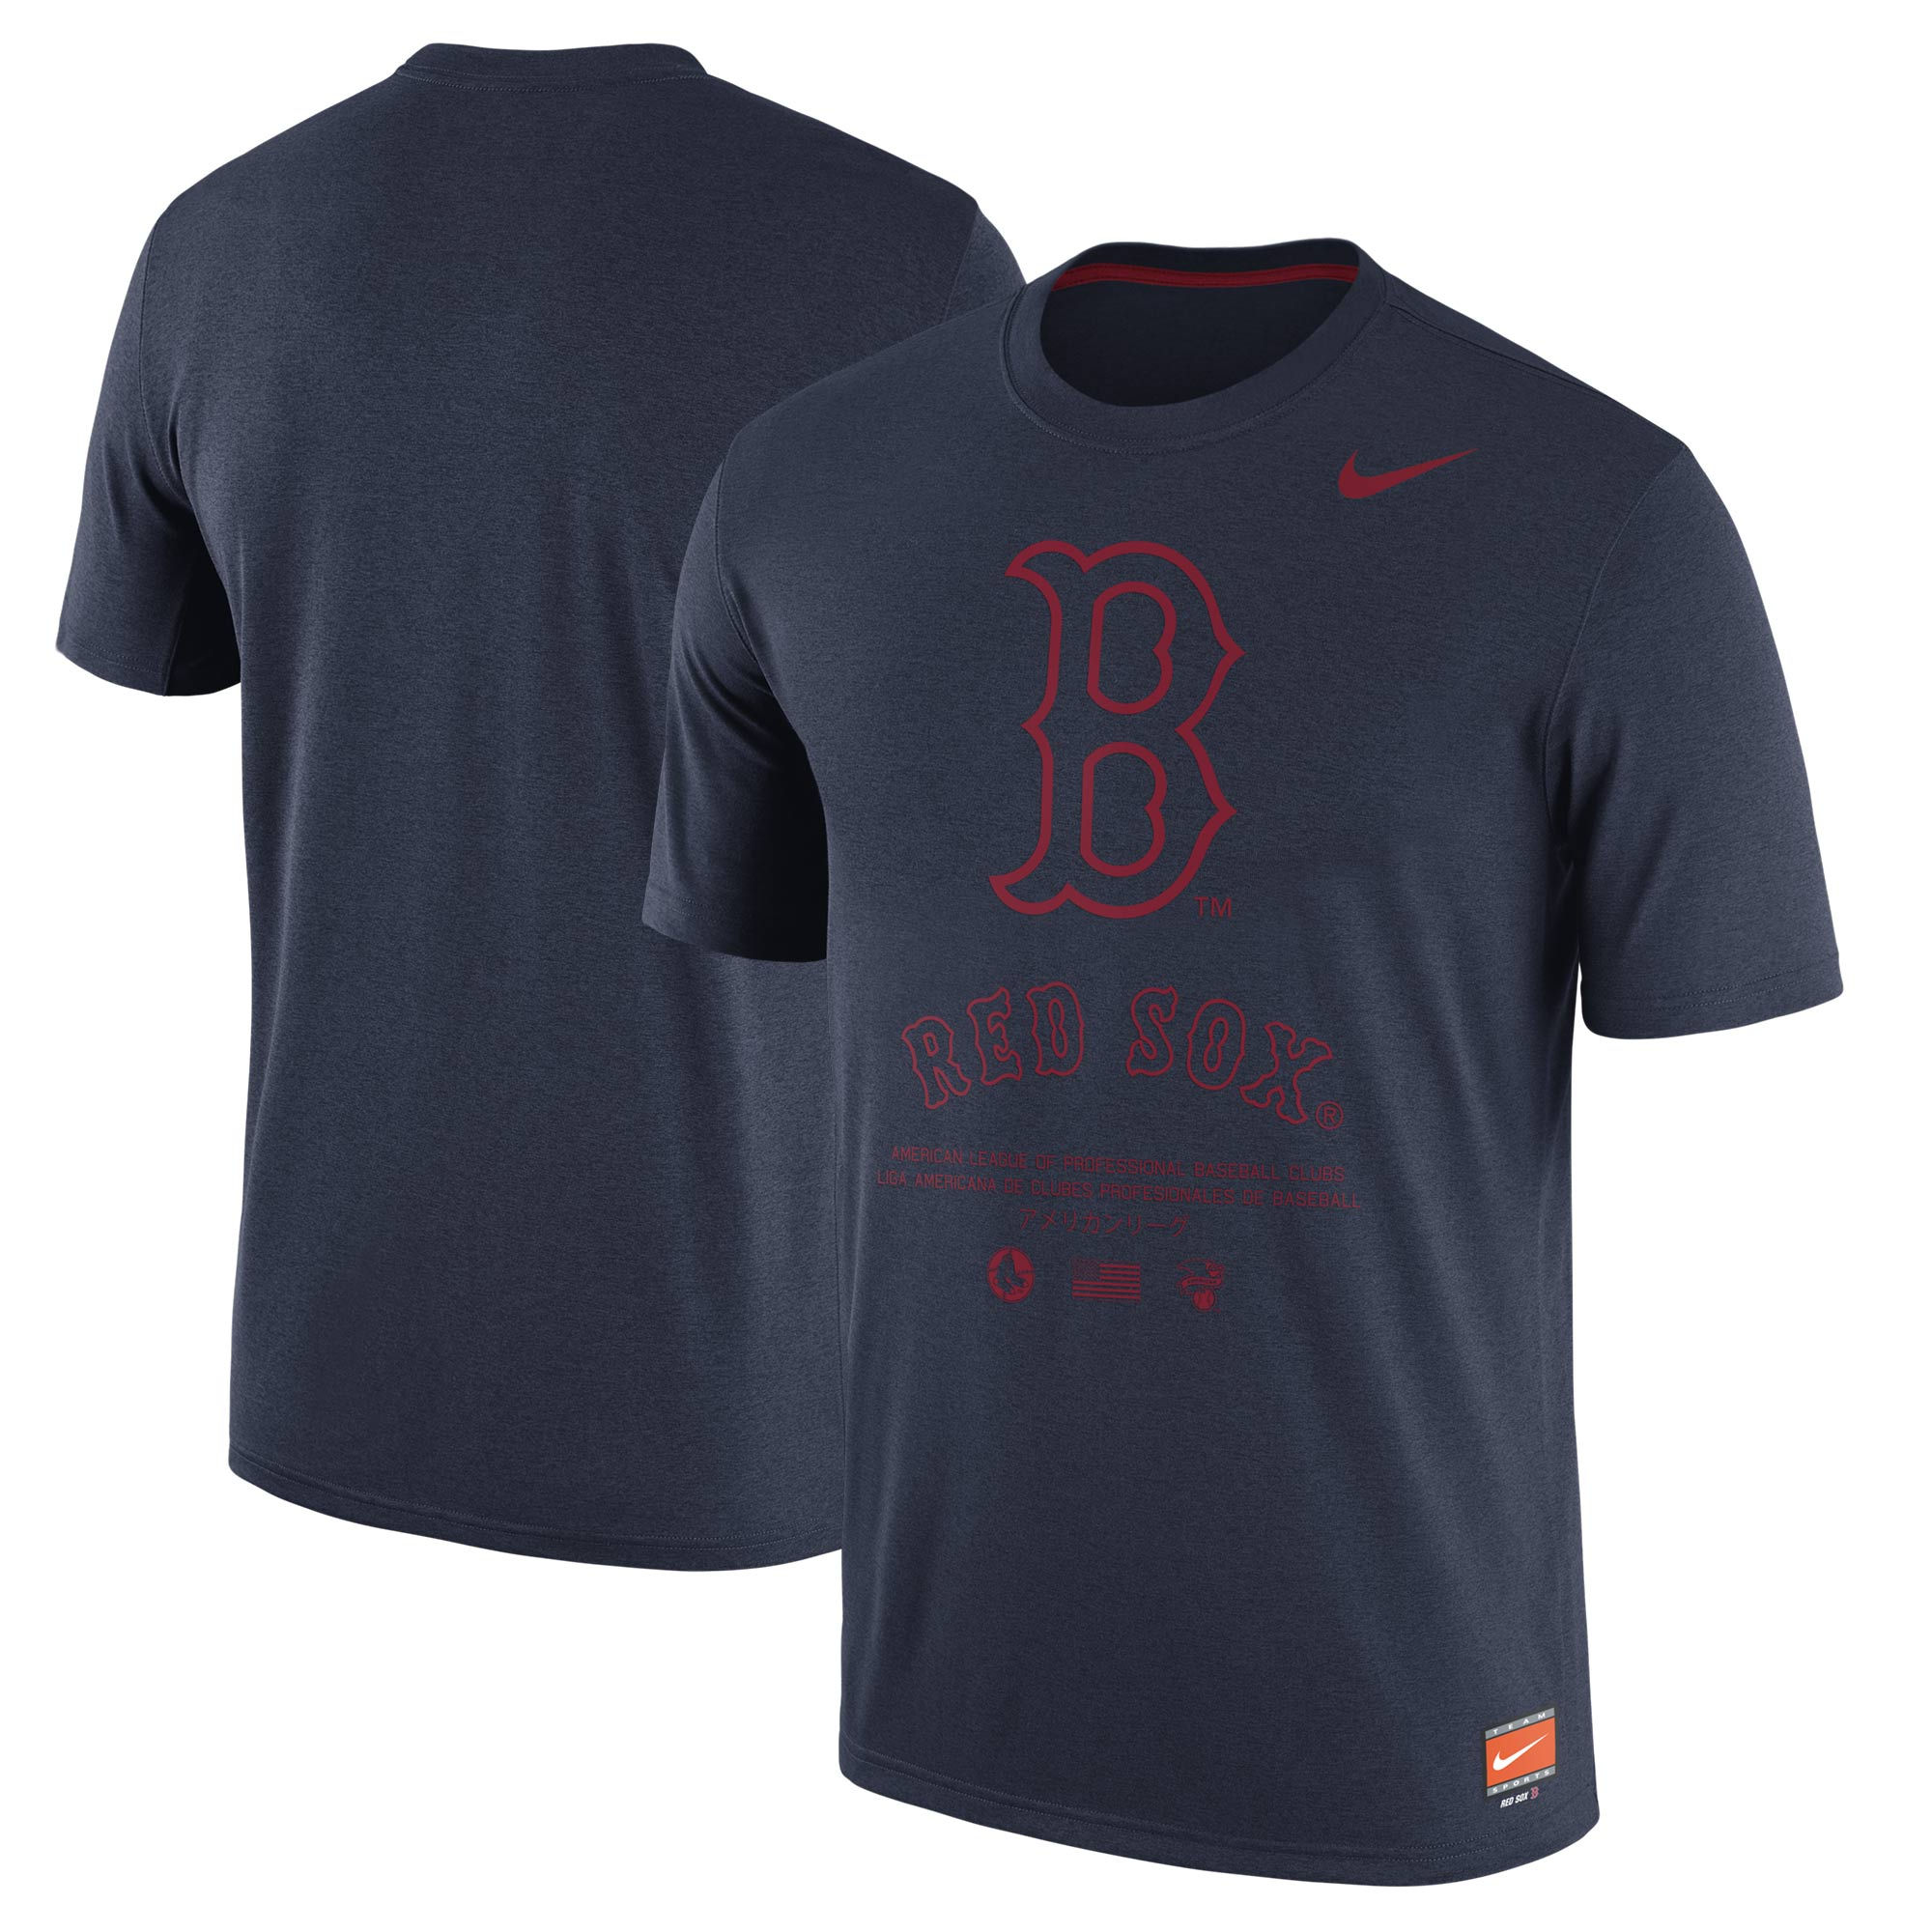 Men's Nike Navy Boston Red Sox Cooperstown Collection Legend Gym Issue 1.7 Performance T-Shirt